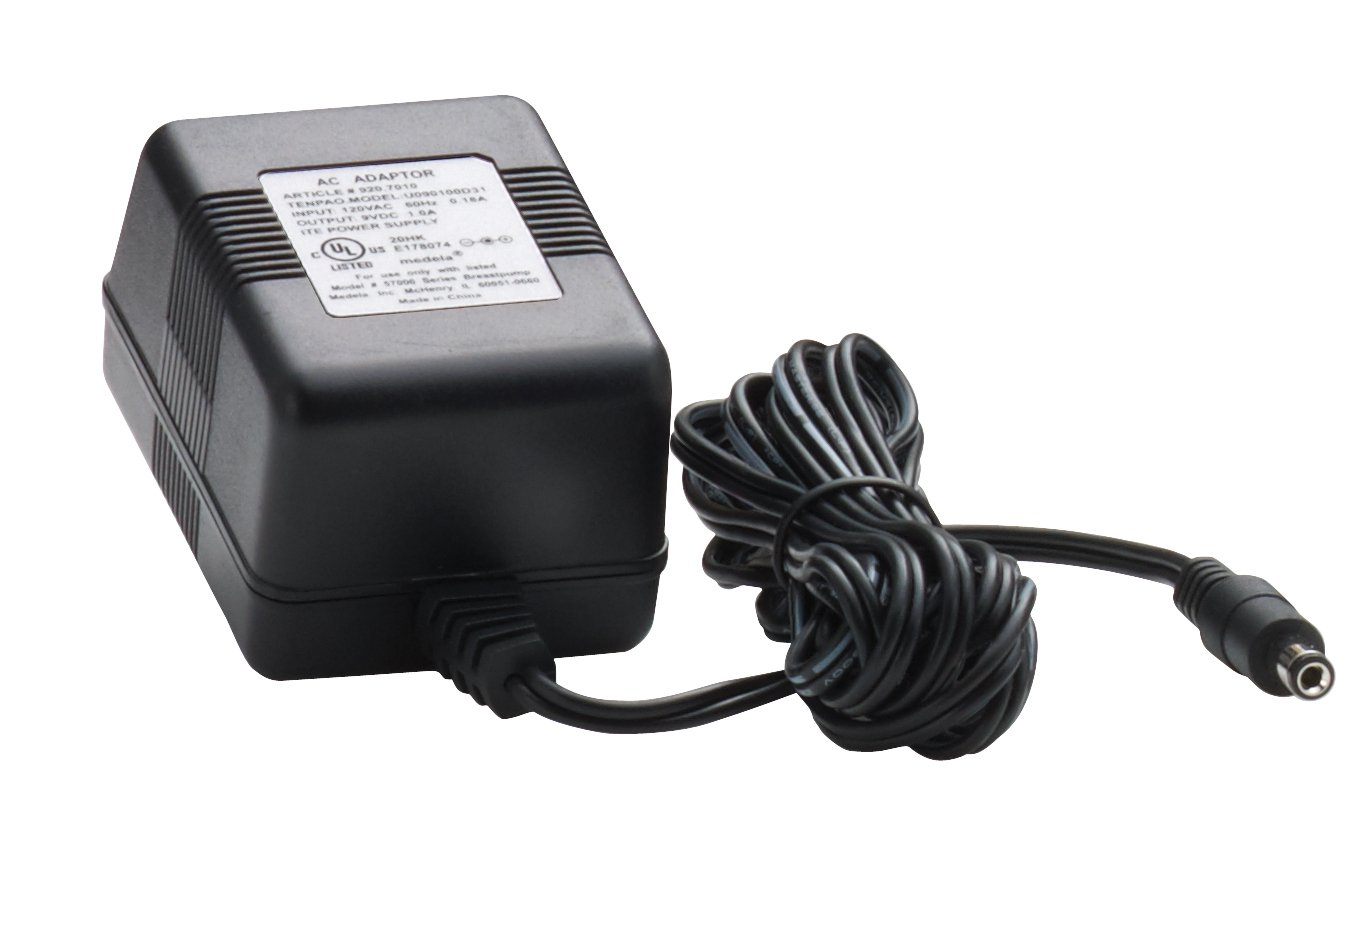 Medela Breast Pump Power Supply Cord, 9 Volt Power Adaptor, Authentic Medela Spare Part for 9V Pump in Style Breastpumps